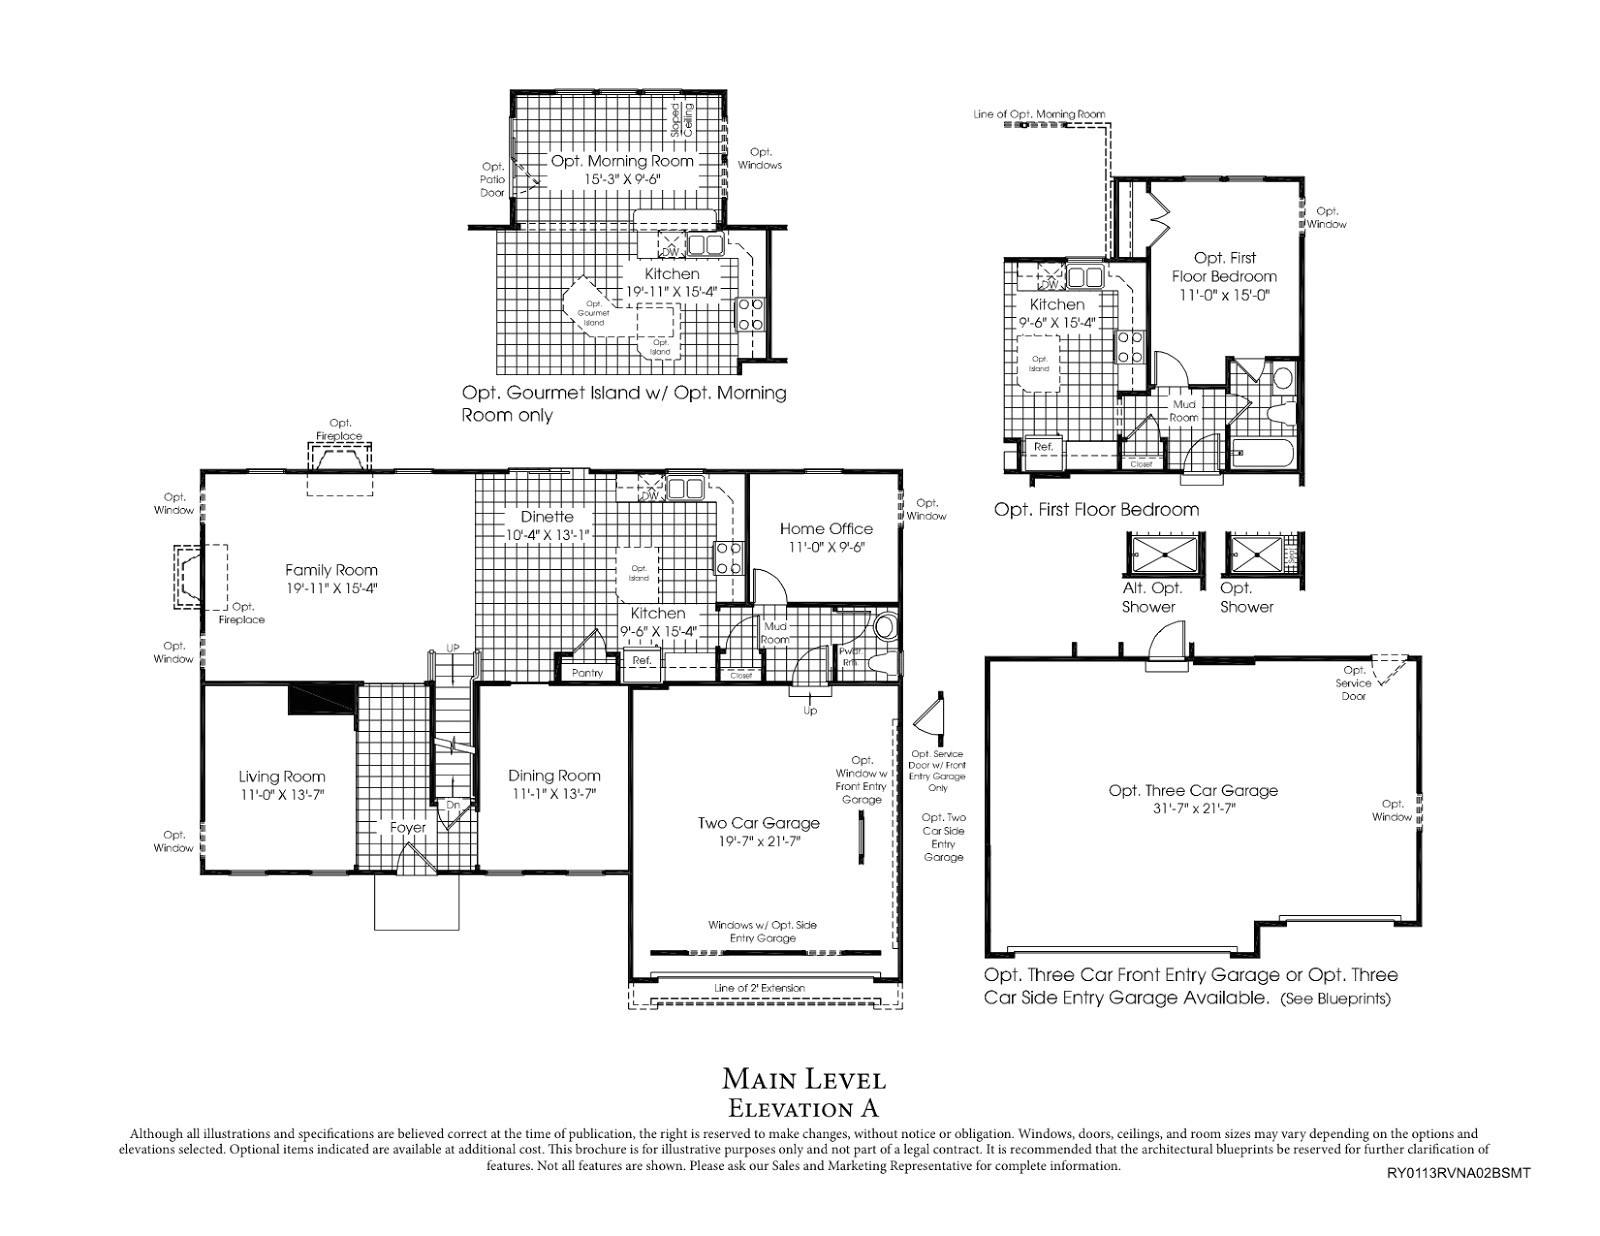 ryan home floor plans inspirational building a ryan homes ravenna floor plan just listed oberlin